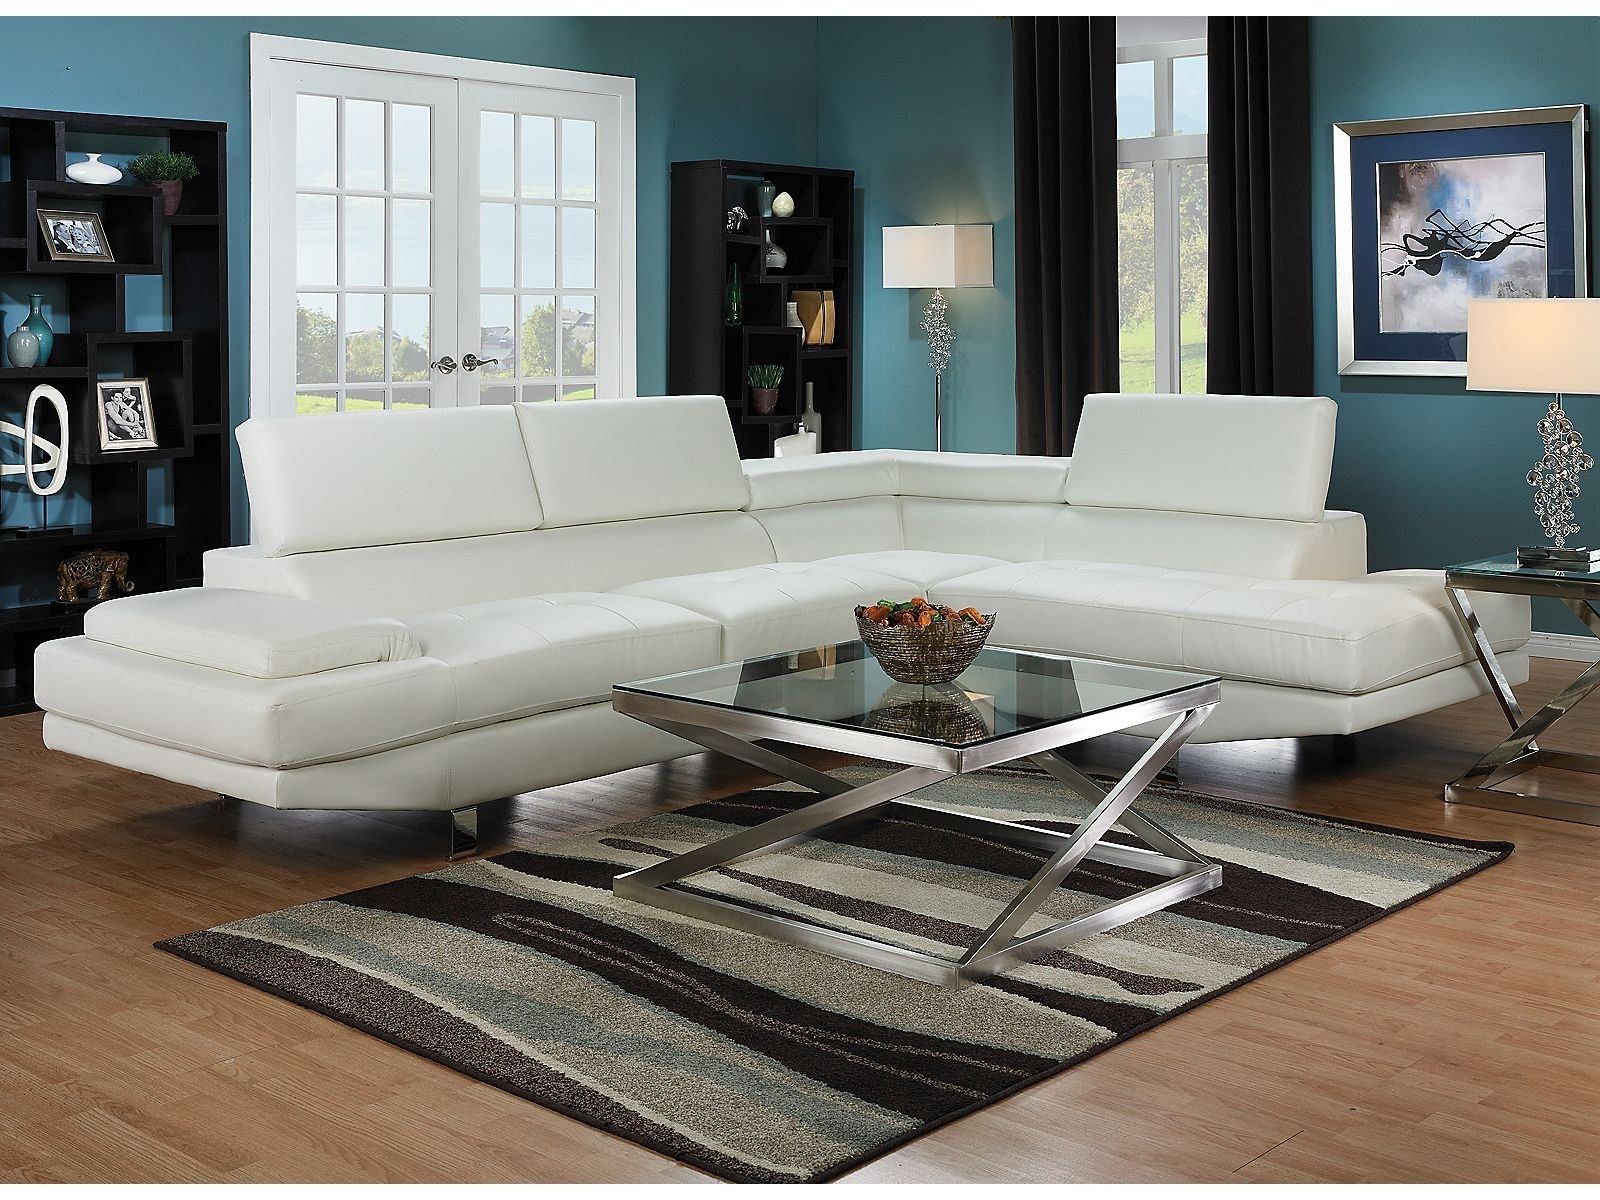 Zane 2 Piece Sectional With Right Facing Chaise – White | Things Pertaining To Sectional Sofas At Brick (View 15 of 15)